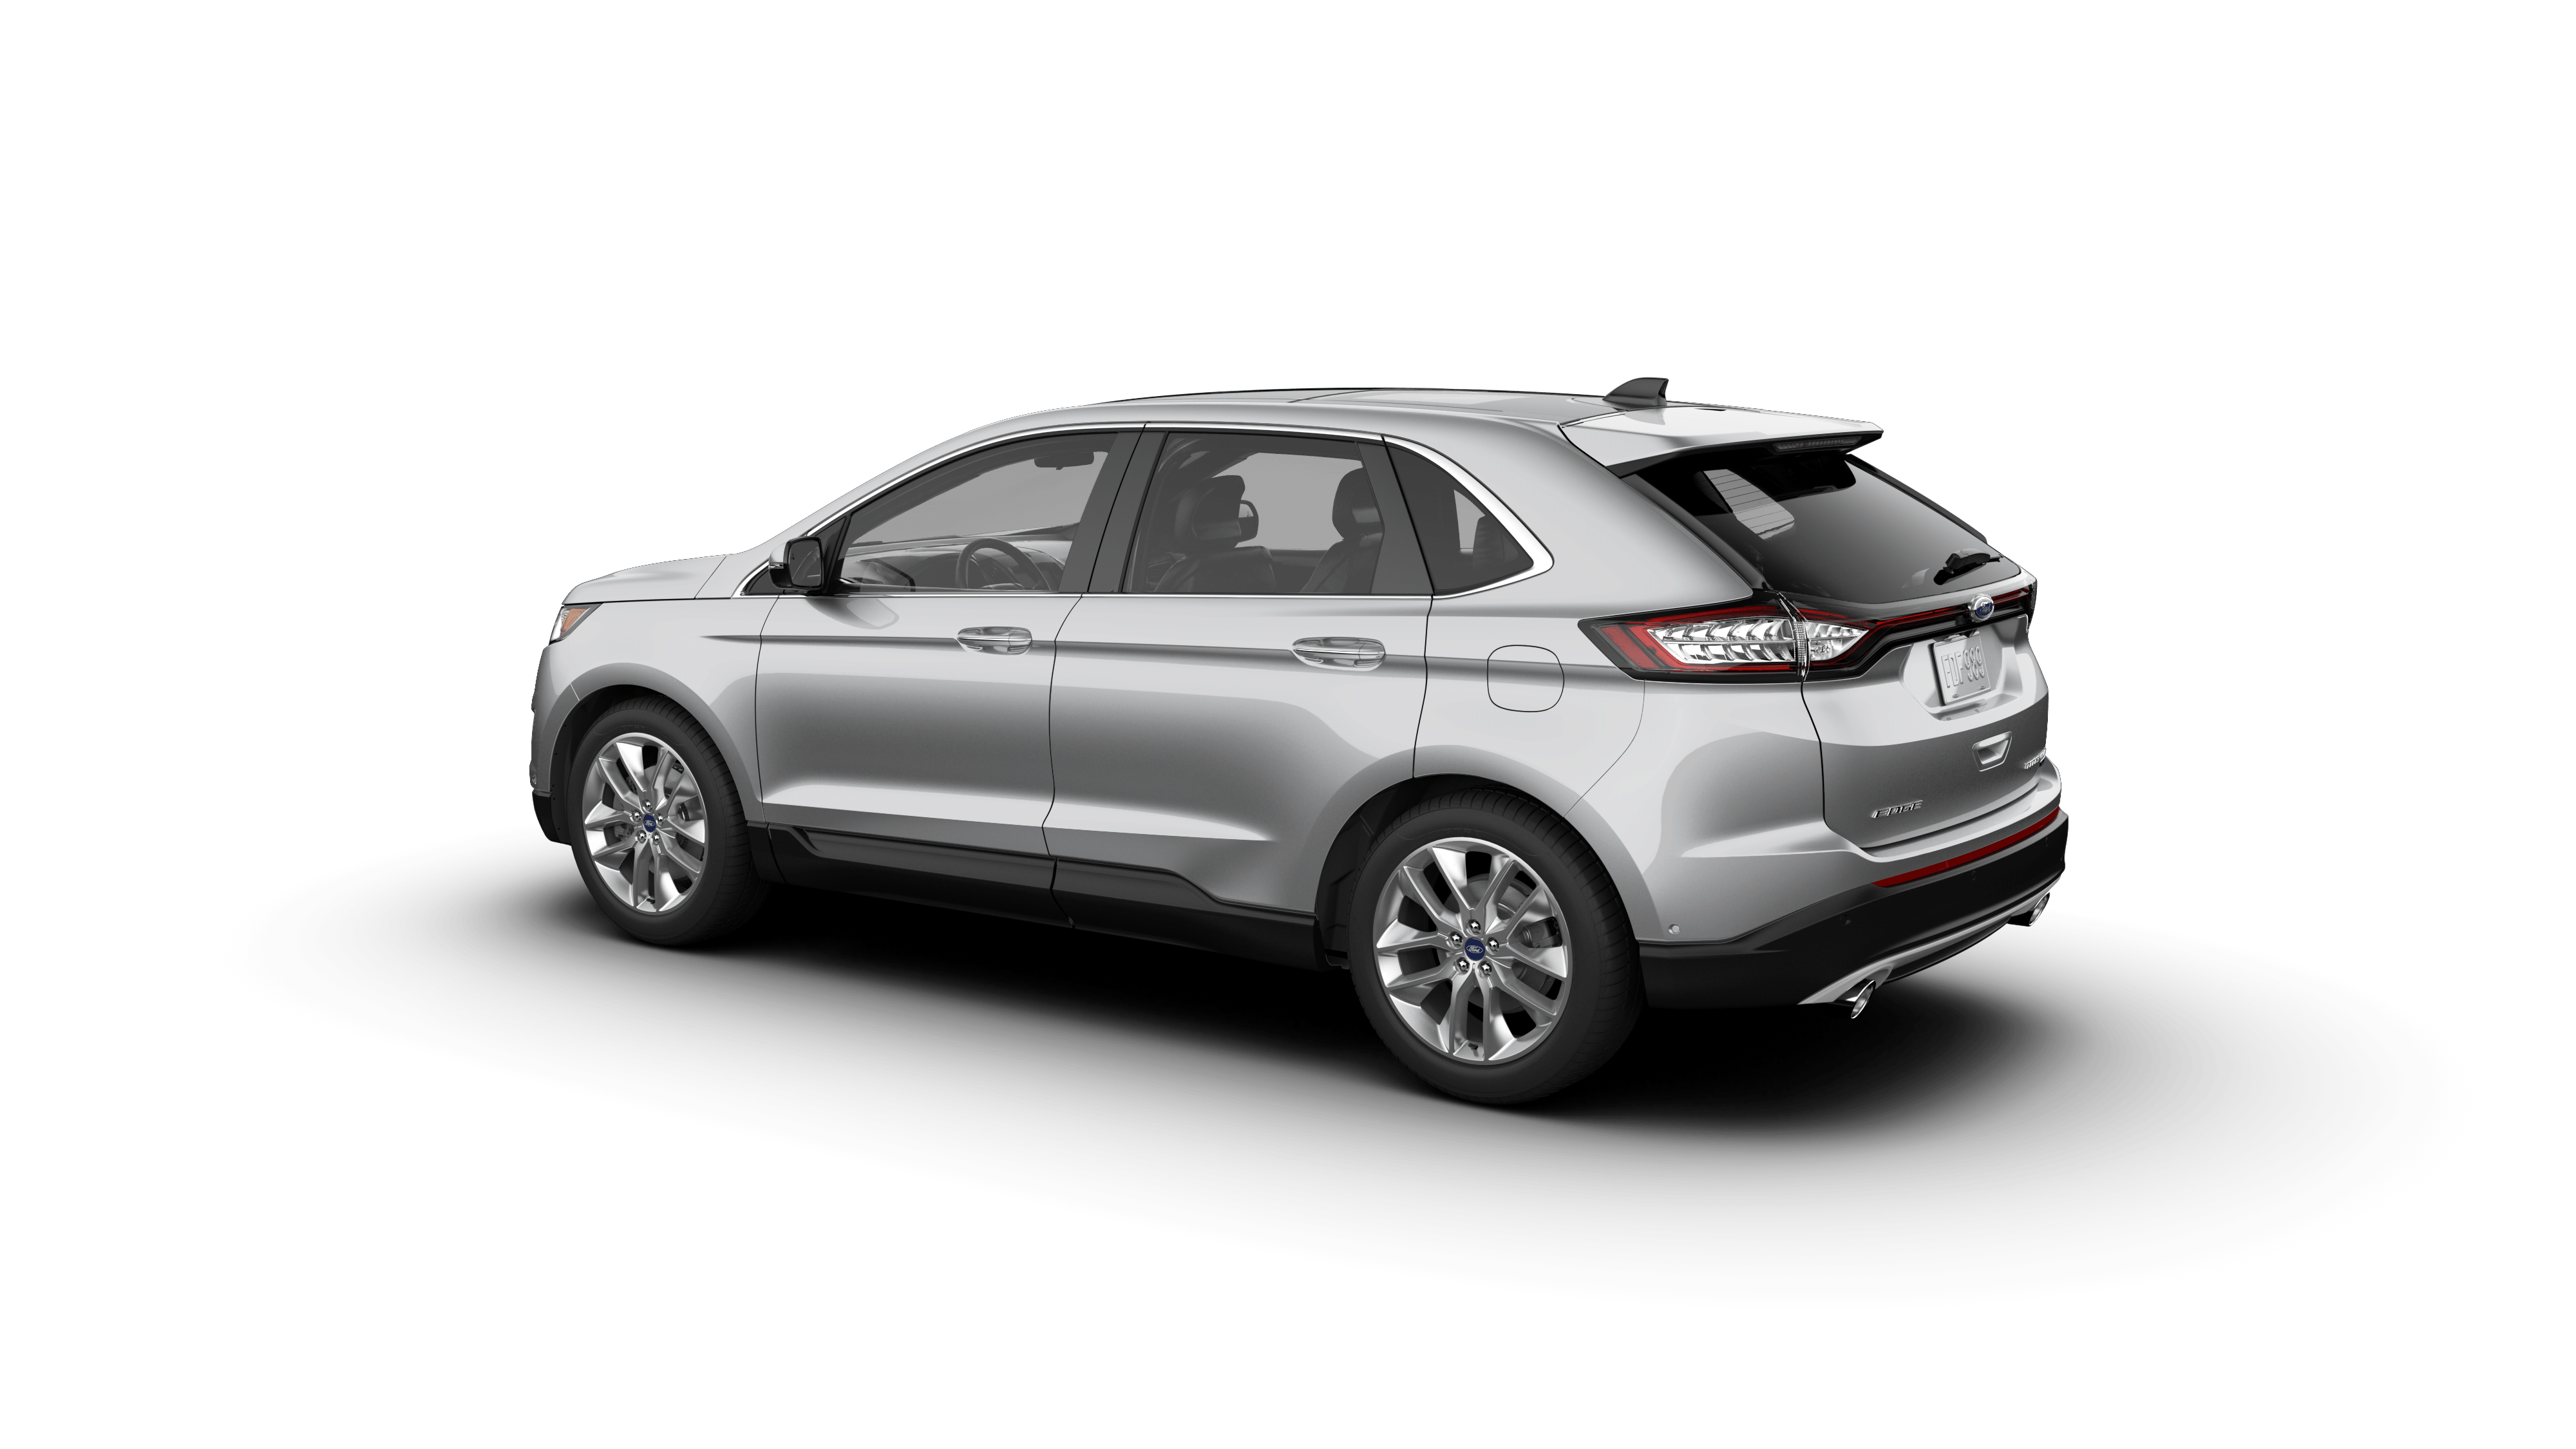 Shults Ford Harmarville >> 2018 Ford Edge for sale in Pittsburgh - 2FMPK4K91JBC22554 ...